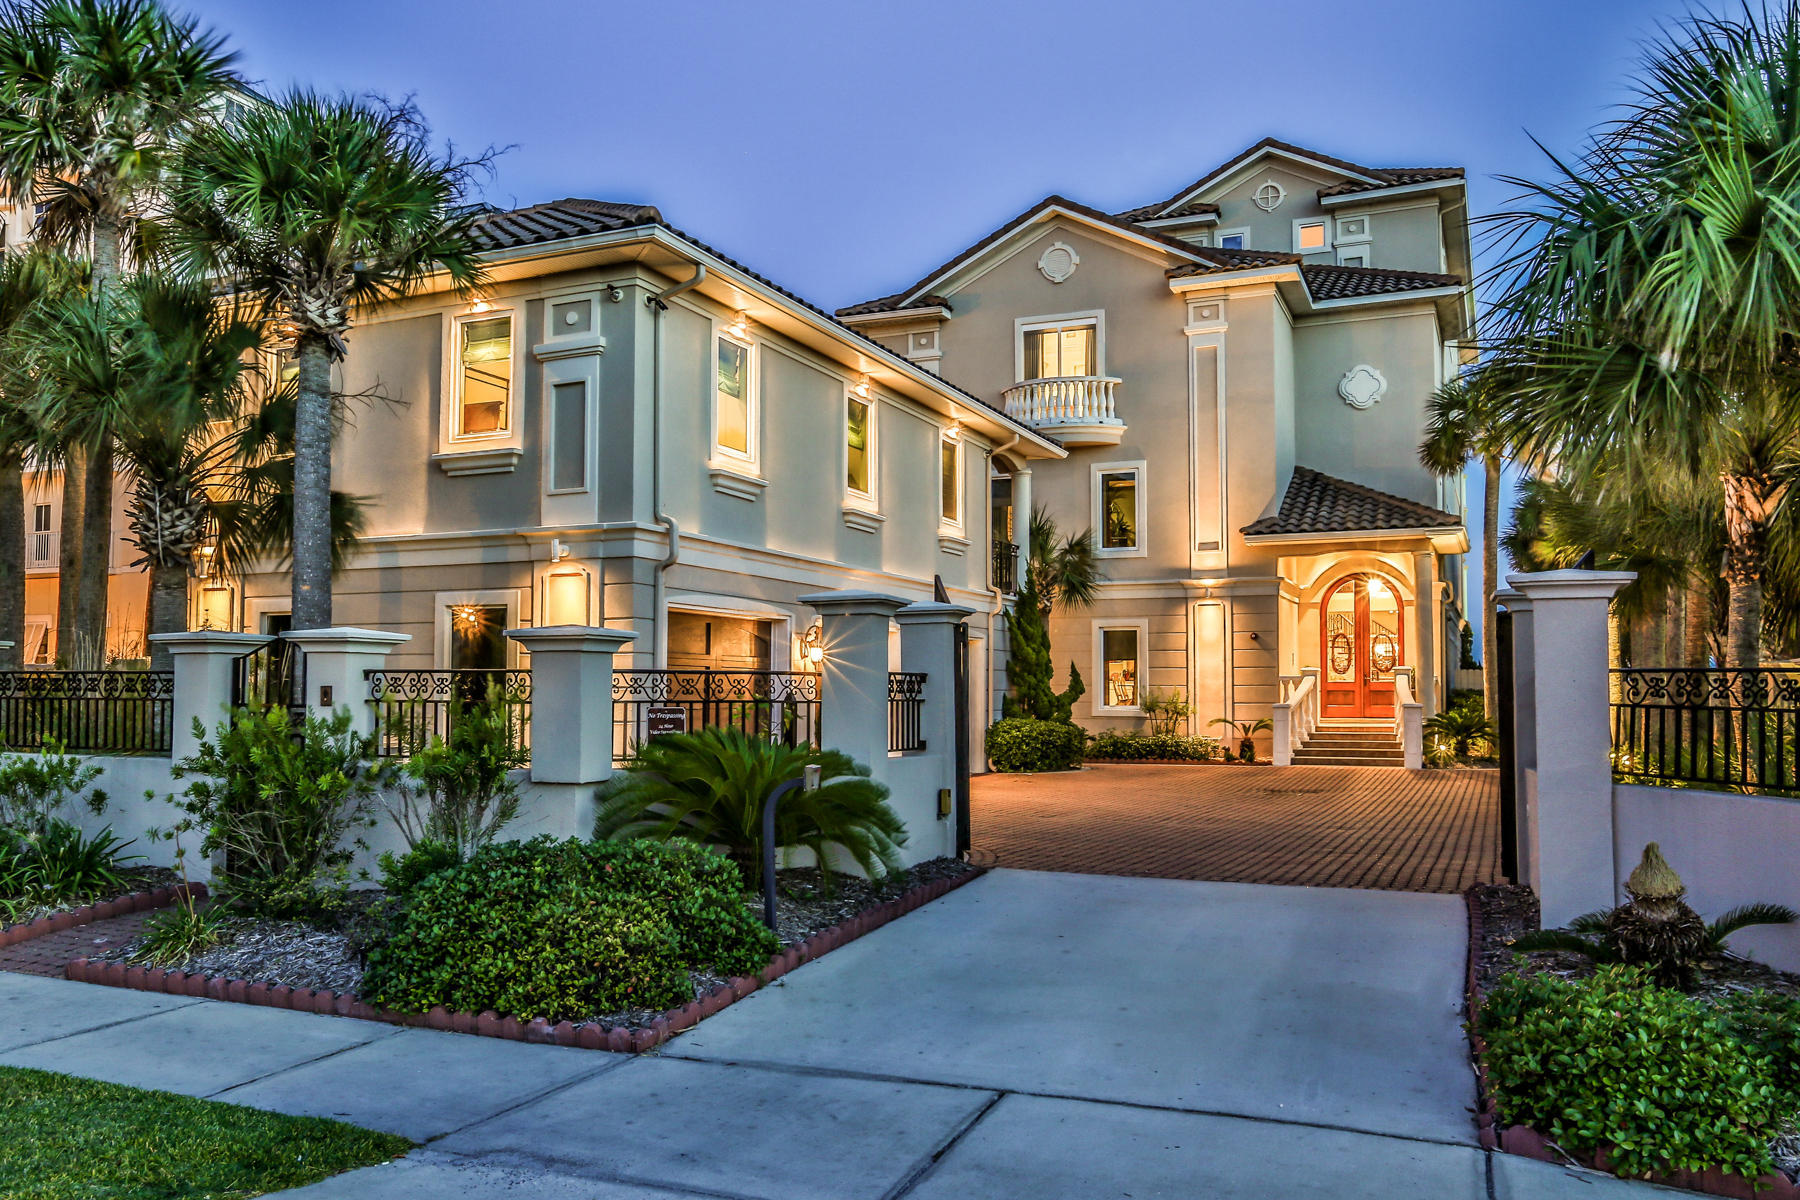 Single Family Home for Sale at A TRUE LIVING MASTERPIECE 2990 Scenic Hwy 98 Destin, Florida 32541 United States